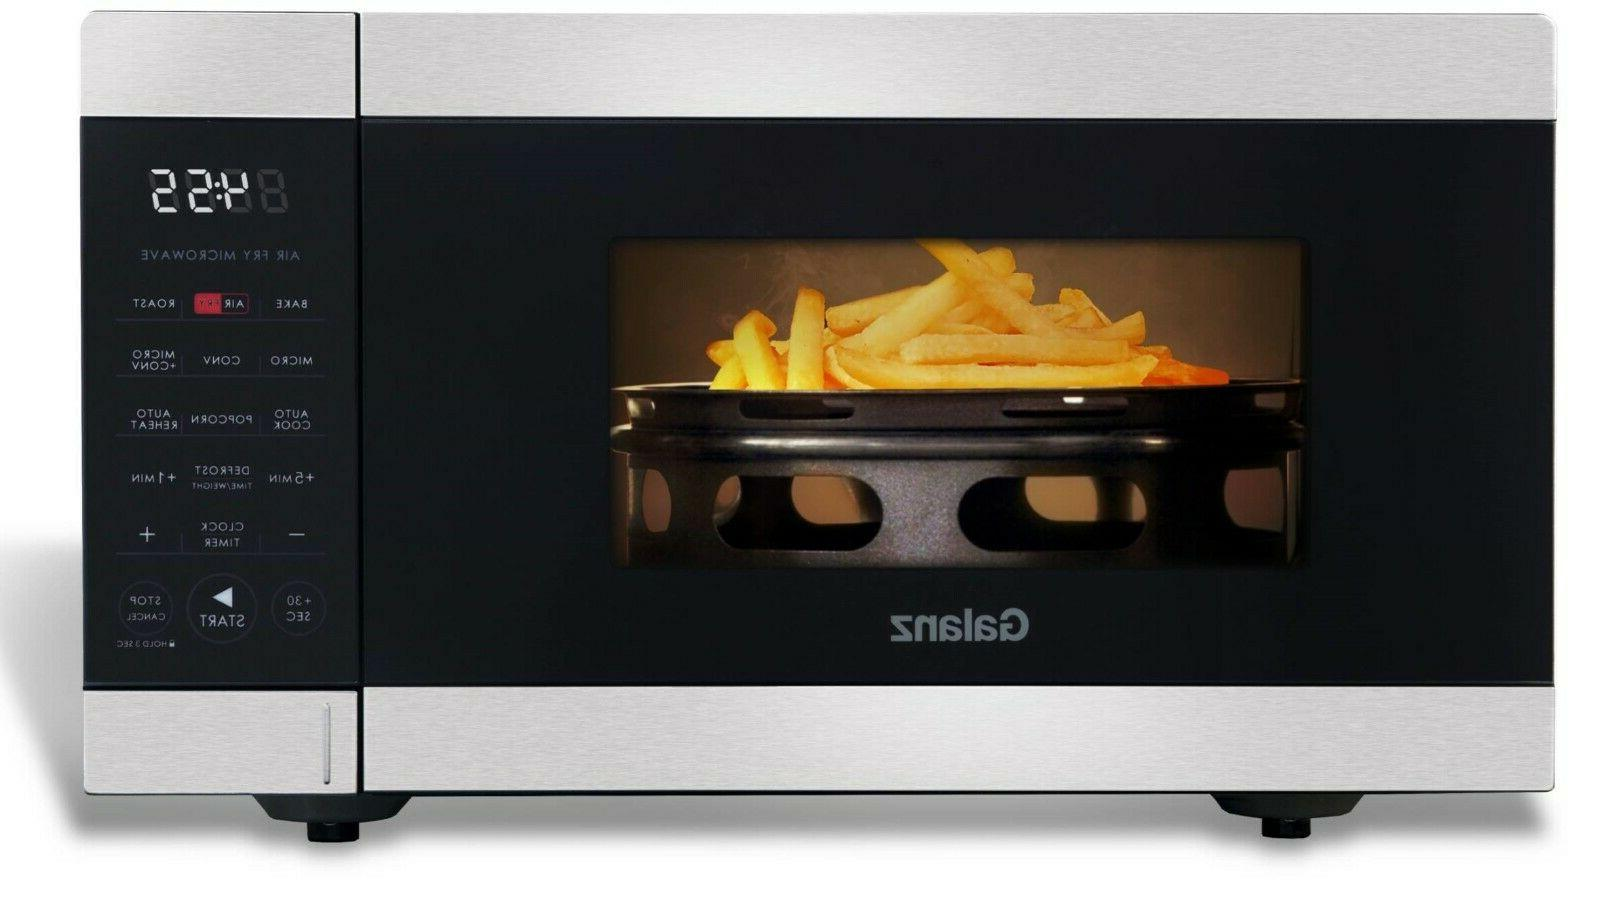 Galanz 3-in-1 Counter-top Air Fryer Convection Microwave Ove